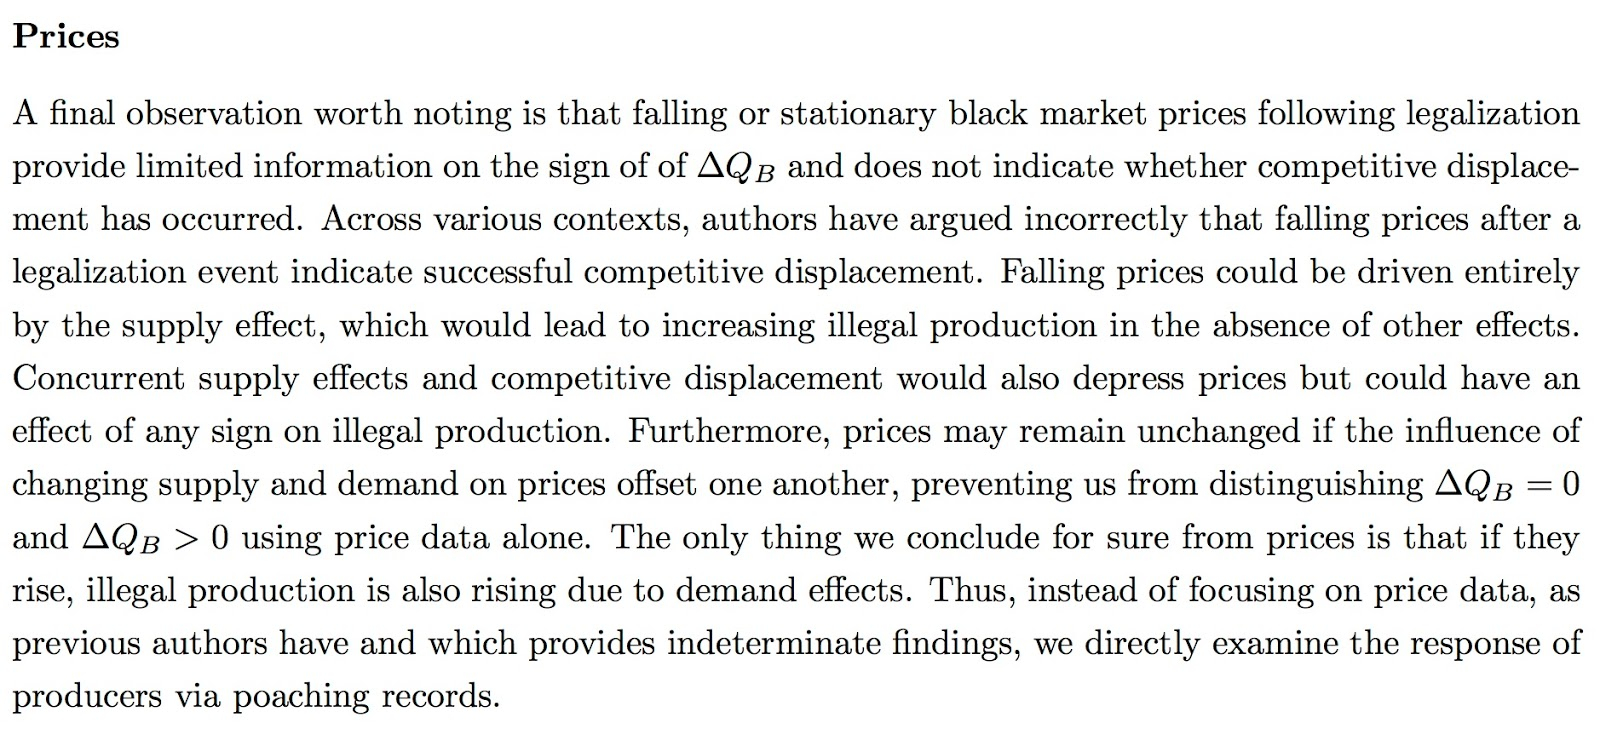 g feed errors drive conclusions in world bank post on ivory trade   2 should we discard our findings because dlm no similar discontinuity in a private ivory price data set